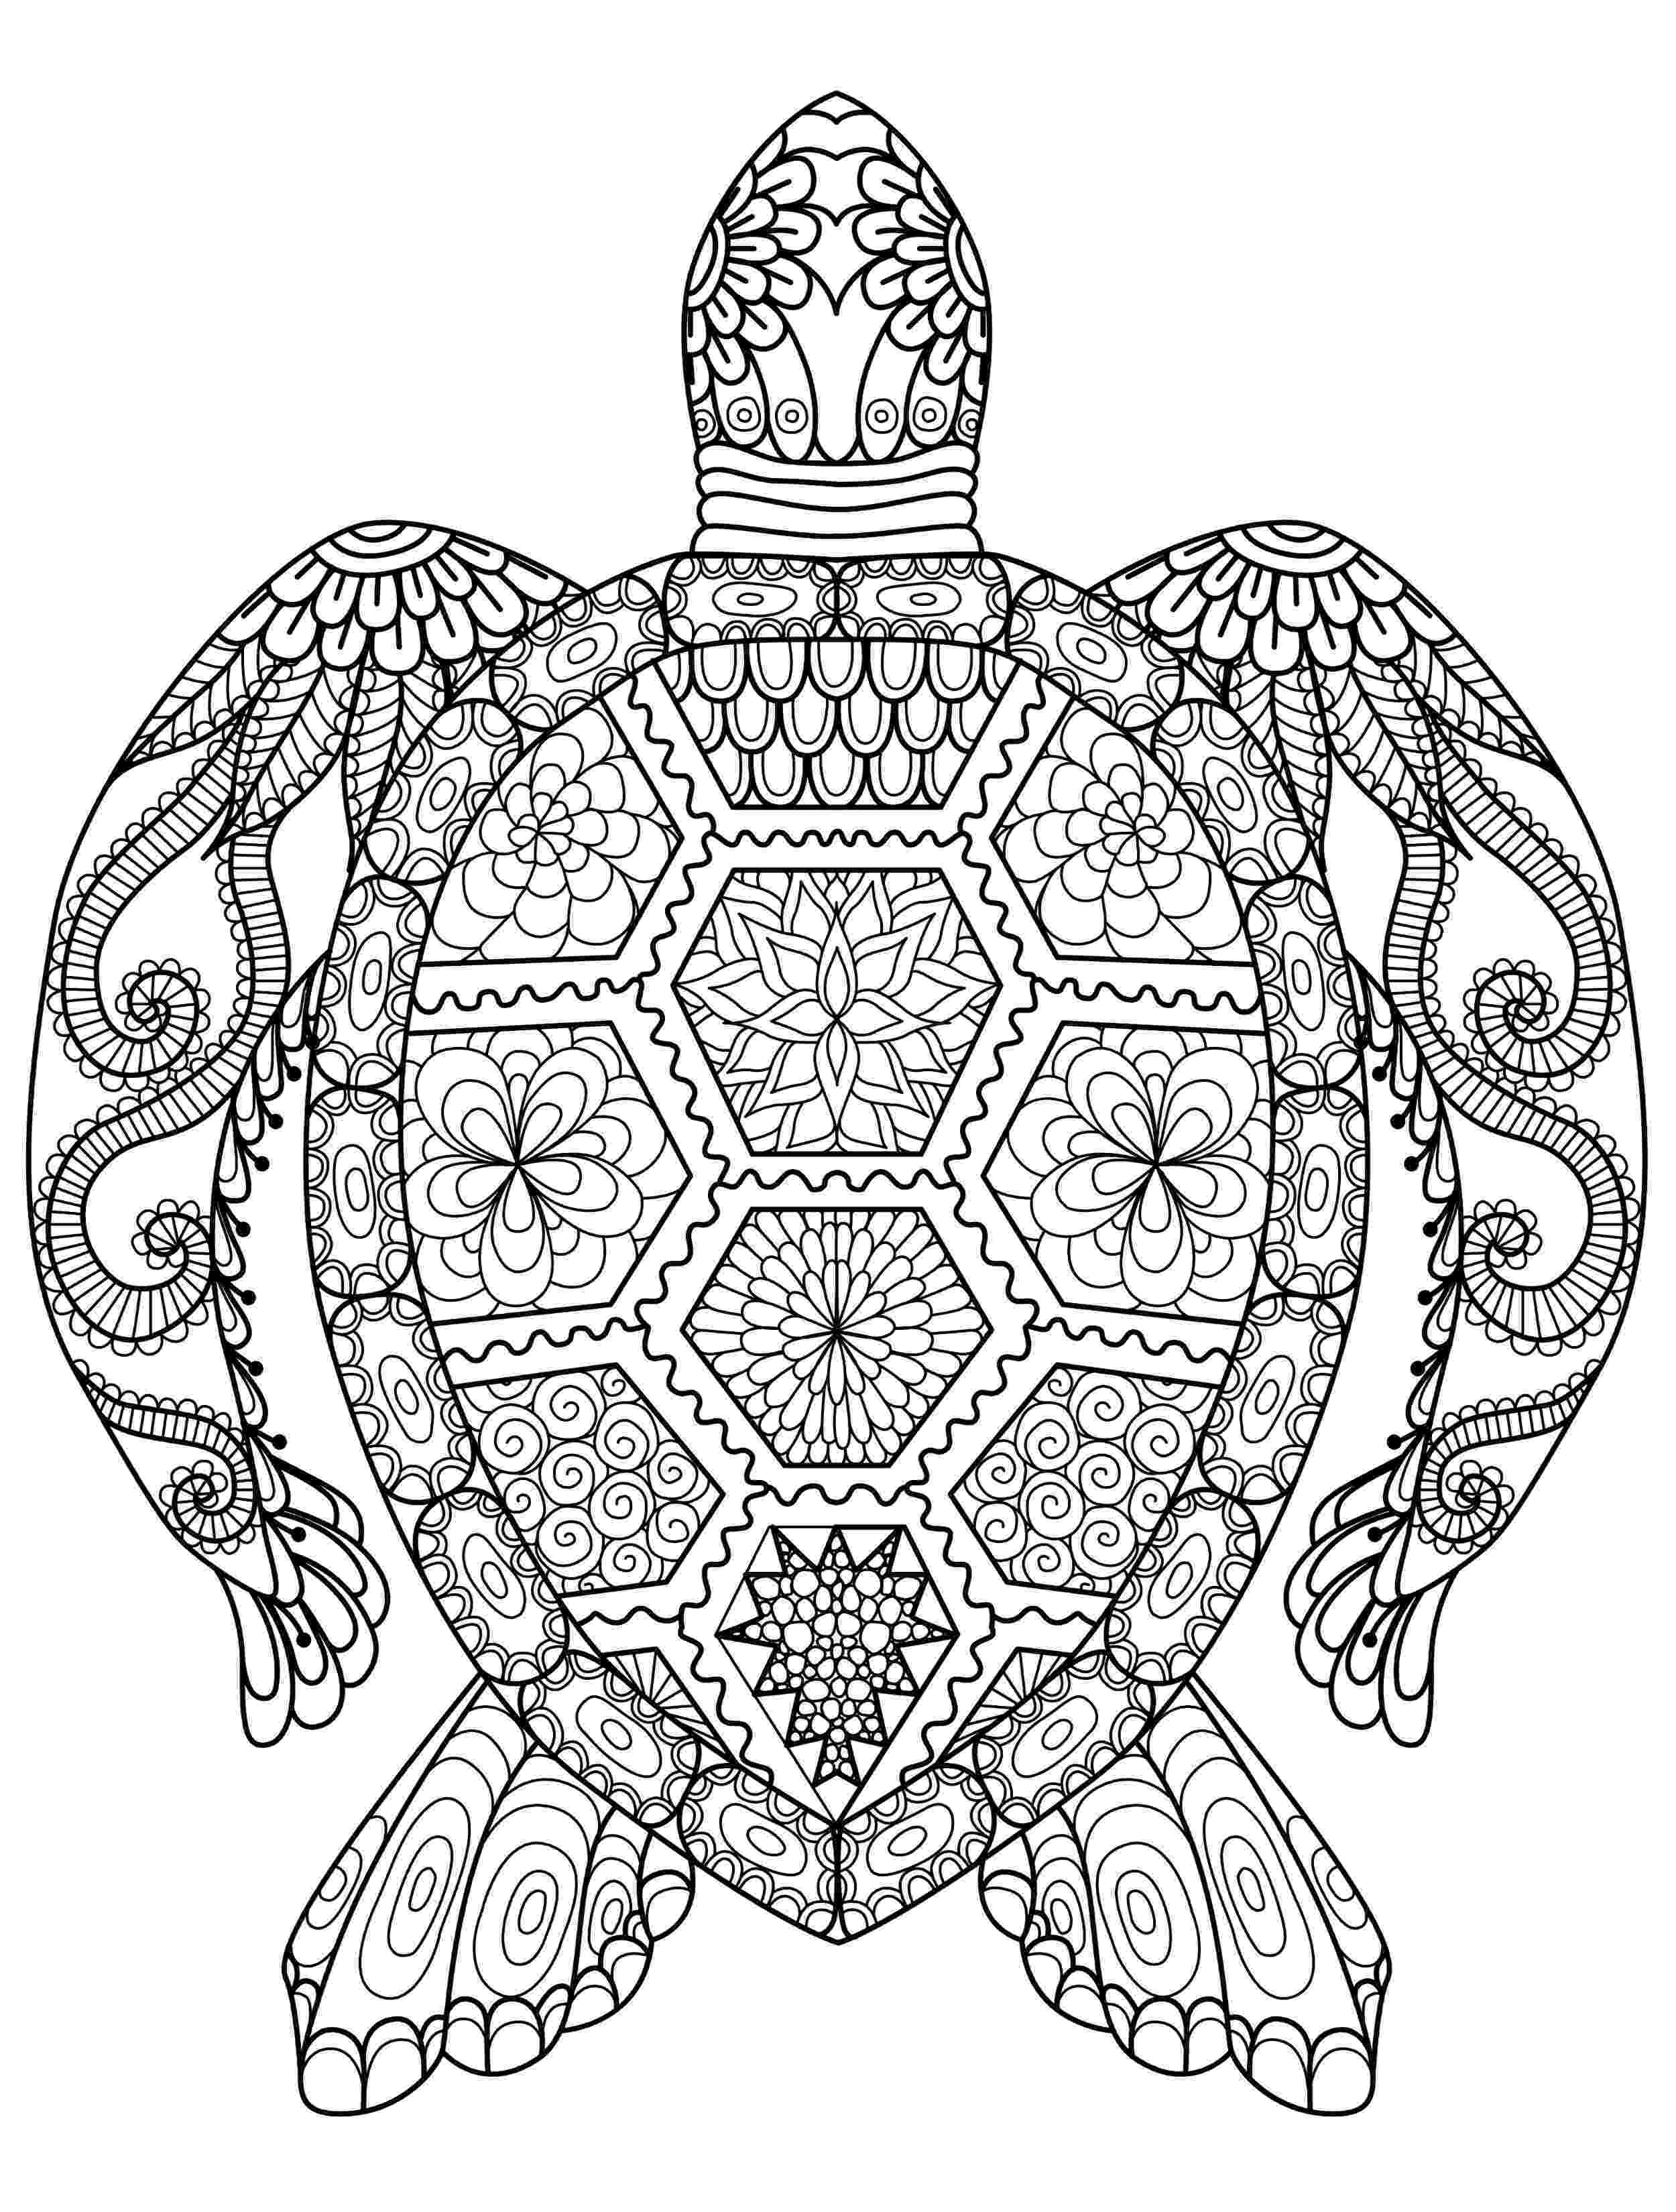 adult coloring pages online adult coloring pages to print to download and print for free online coloring pages adult